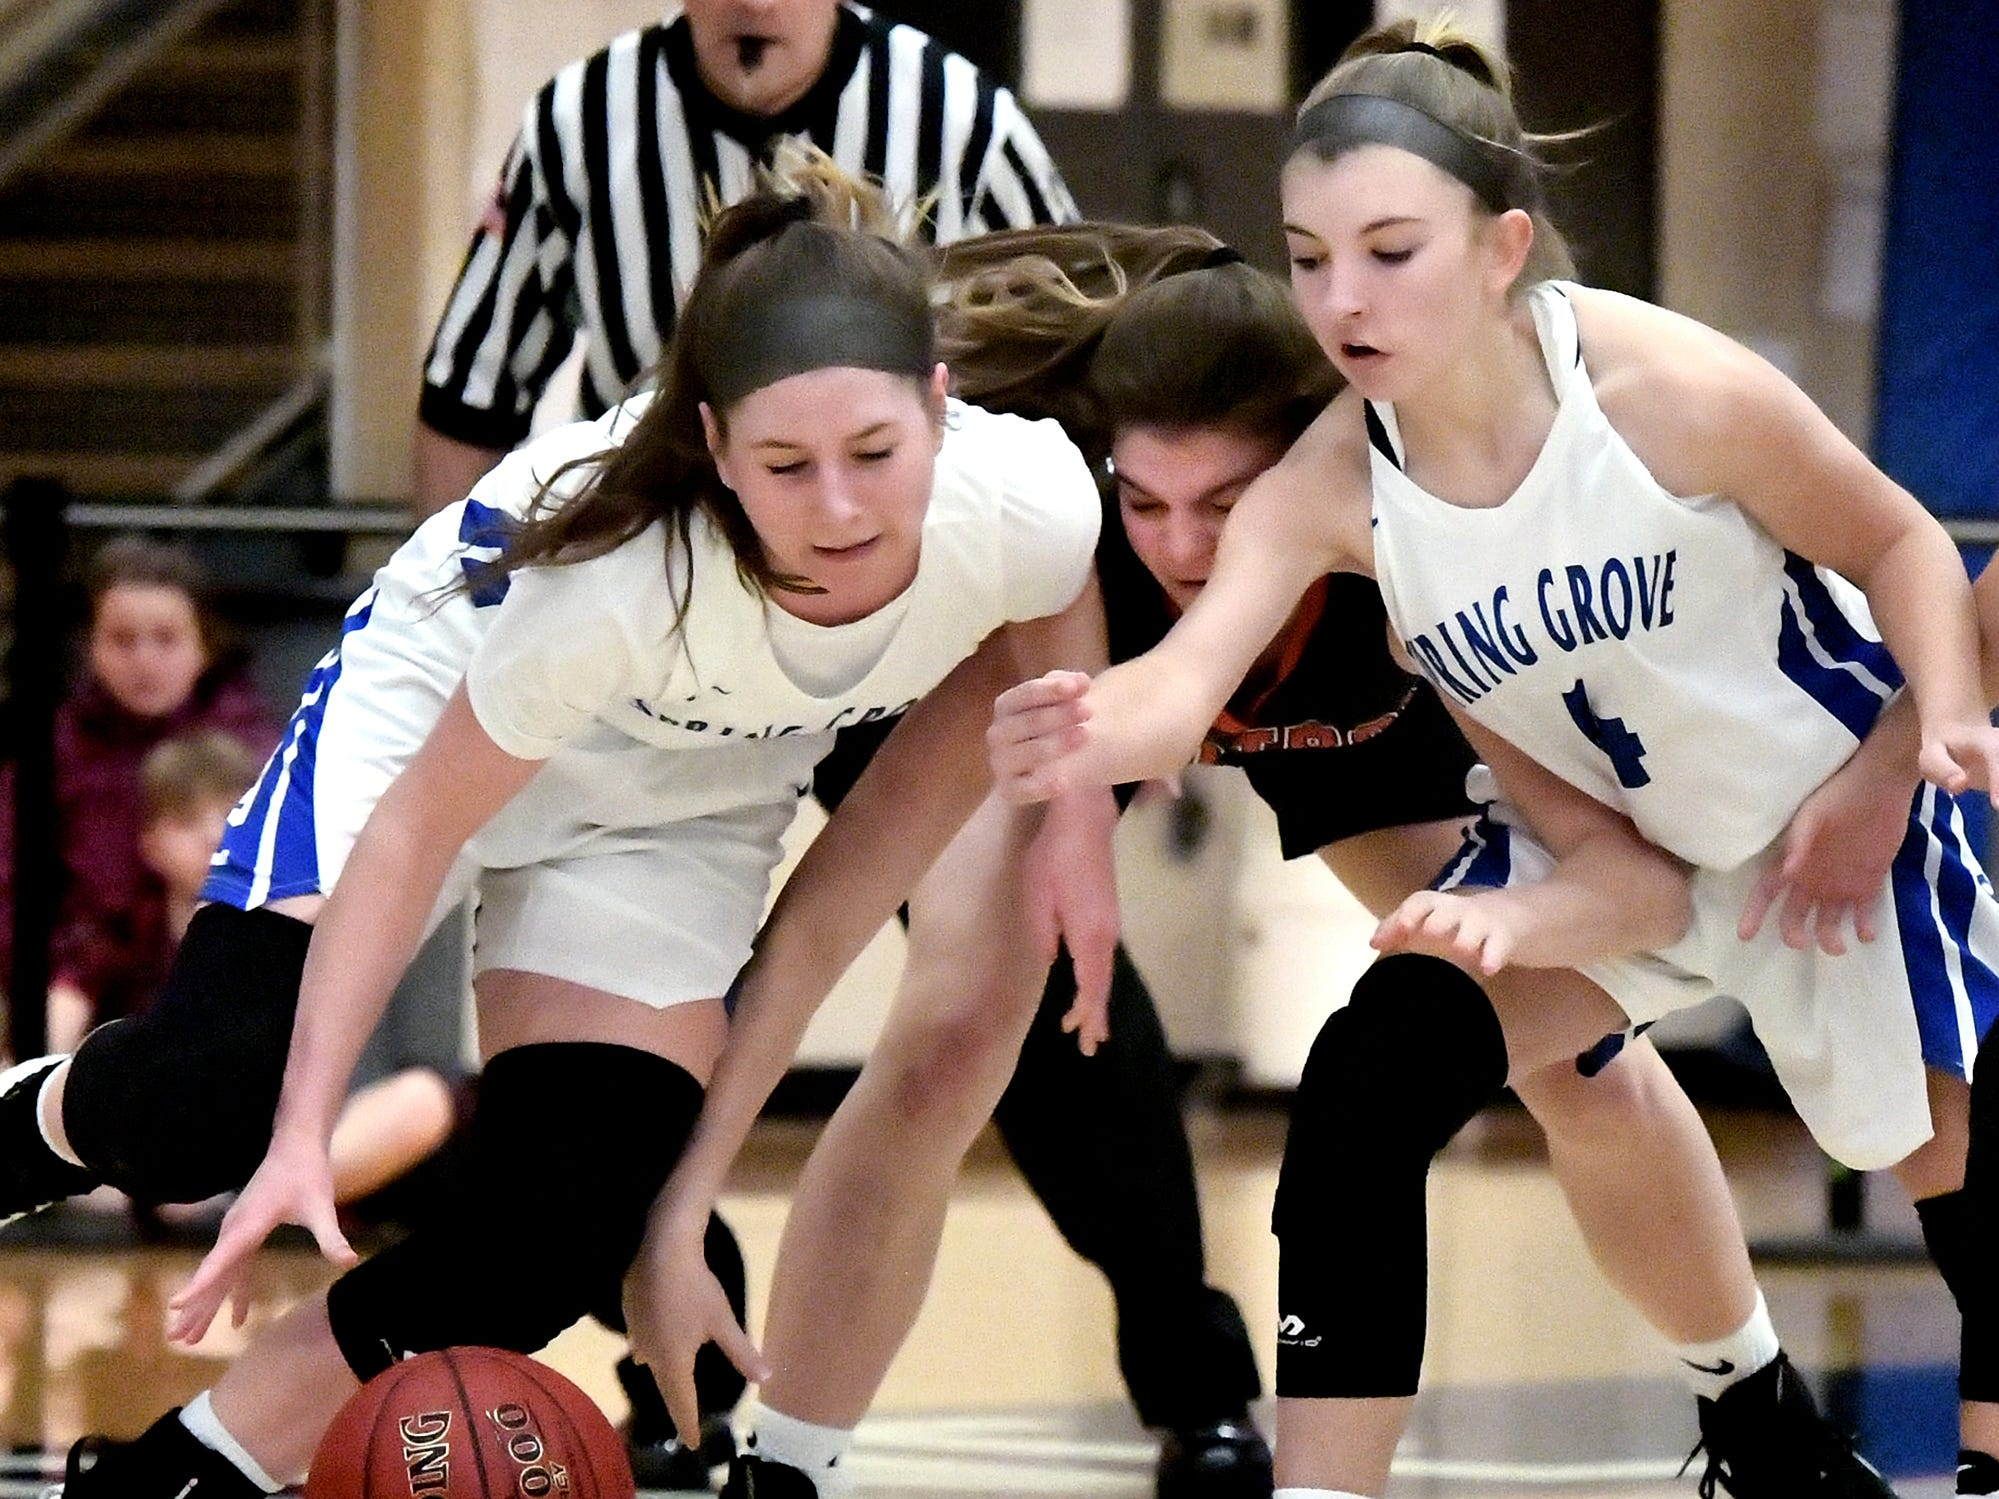 Spring Grove's Ellie Glass, left, and Addyson Wagman chase a loose ball with Central York's Zada Stockbower during basketball action at Spring Grove Tuesday, Jan. 8, 2019. Bill Kalina photo